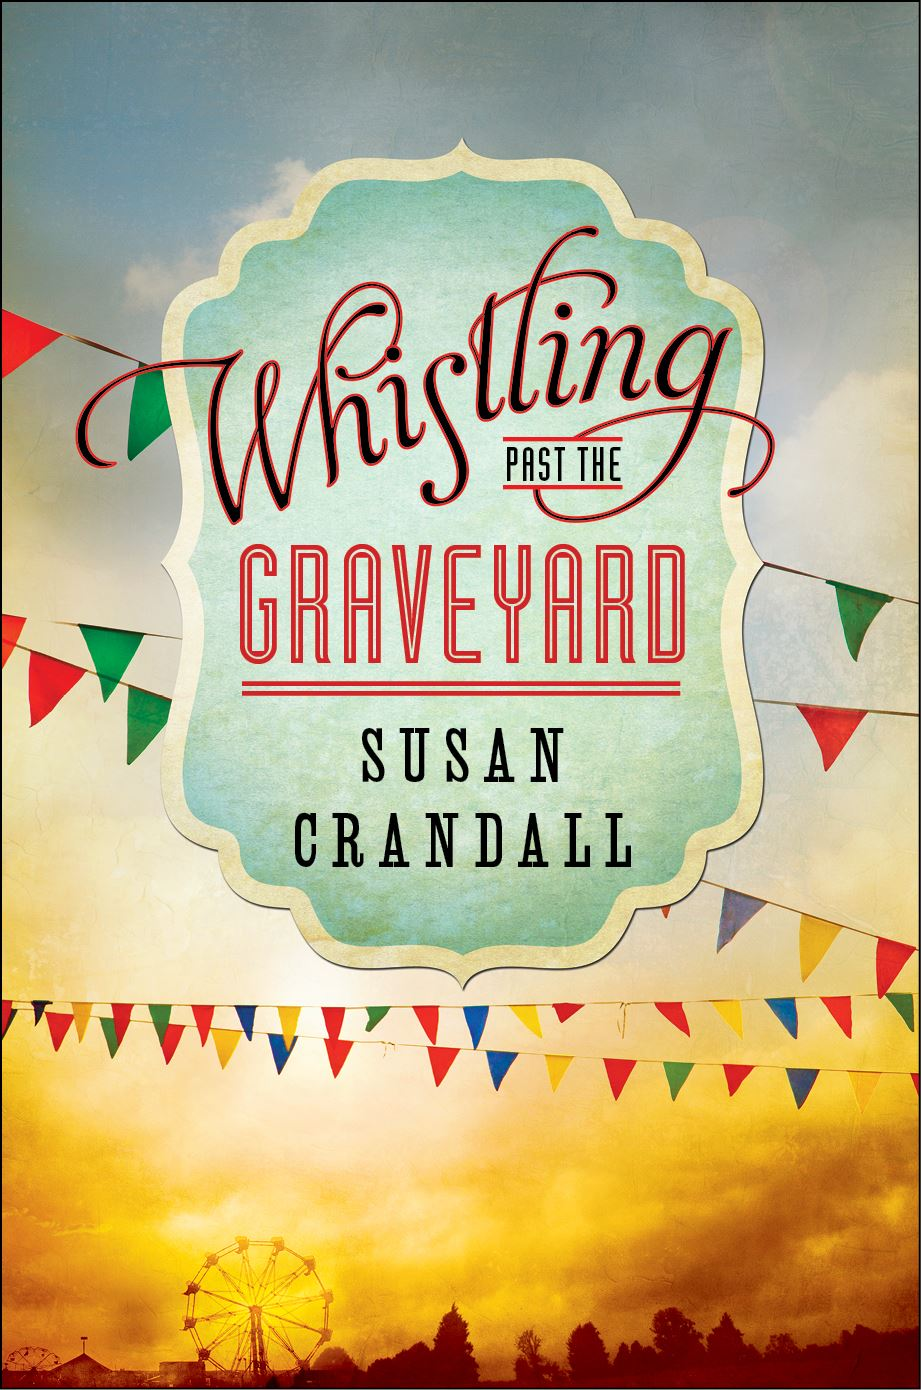 Whistling Past the Graveyard ~ Crandall